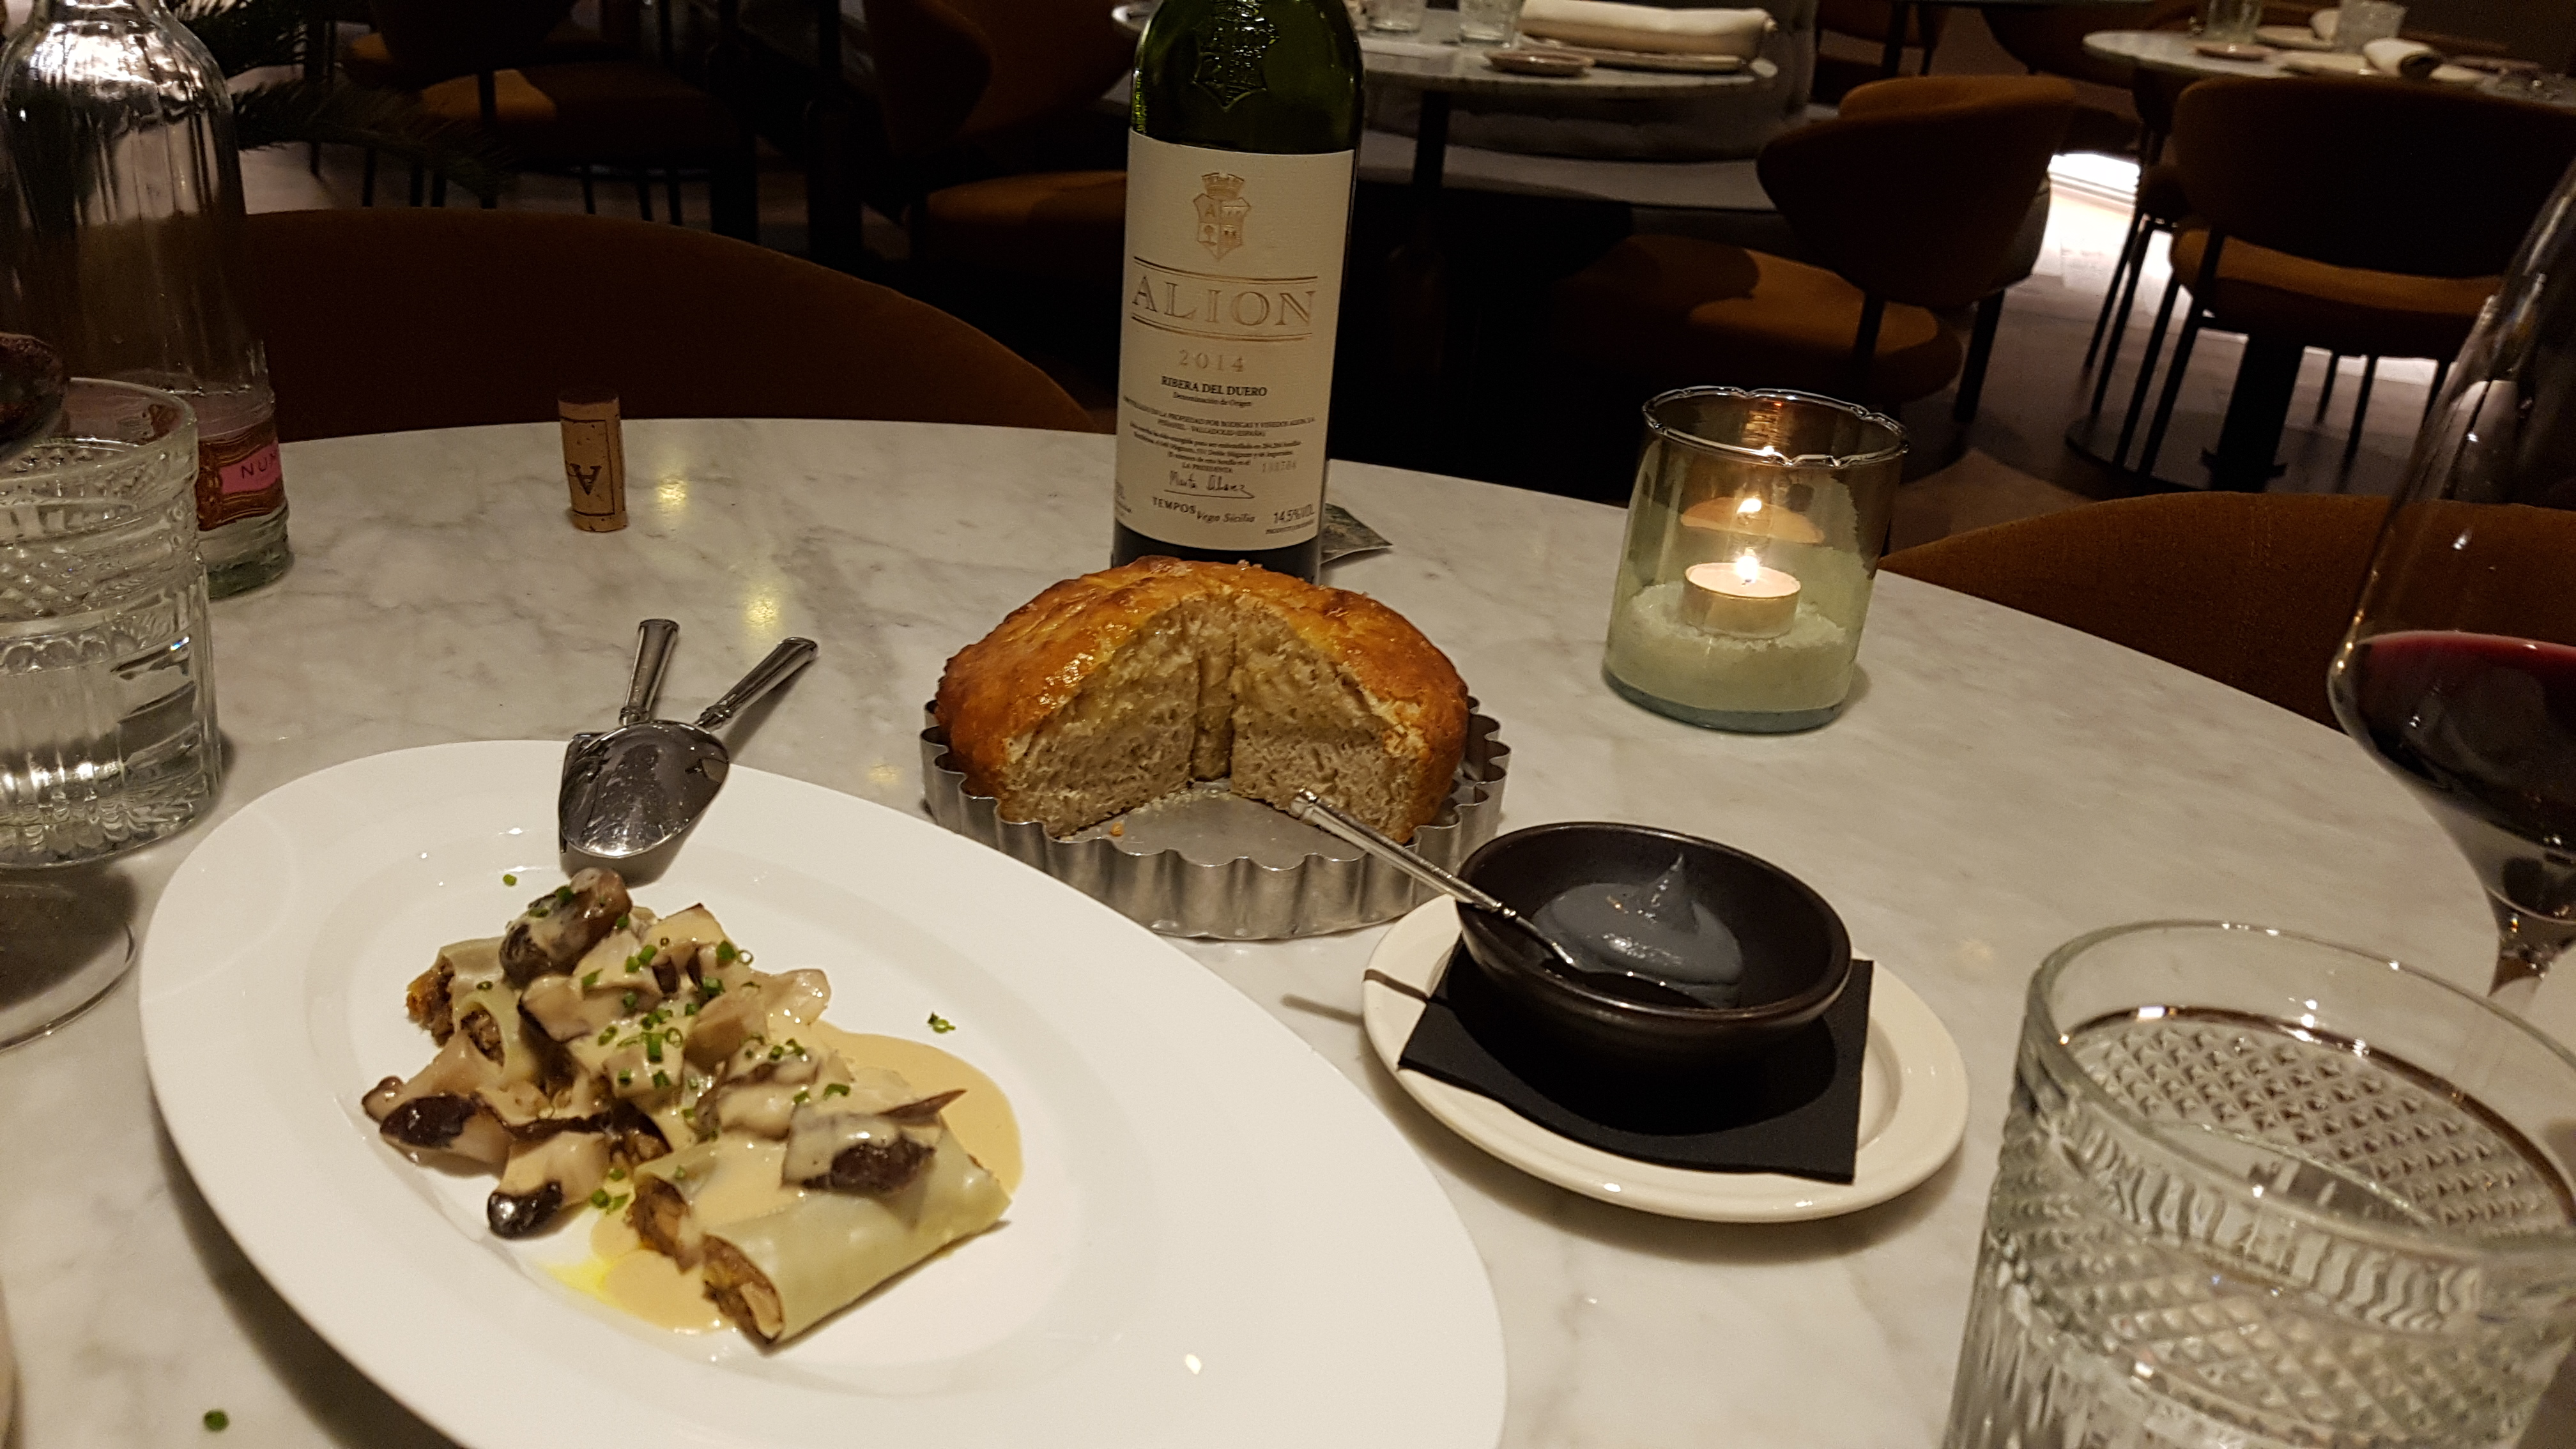 Mini canelloni with mushrooms and foie, Alion wine